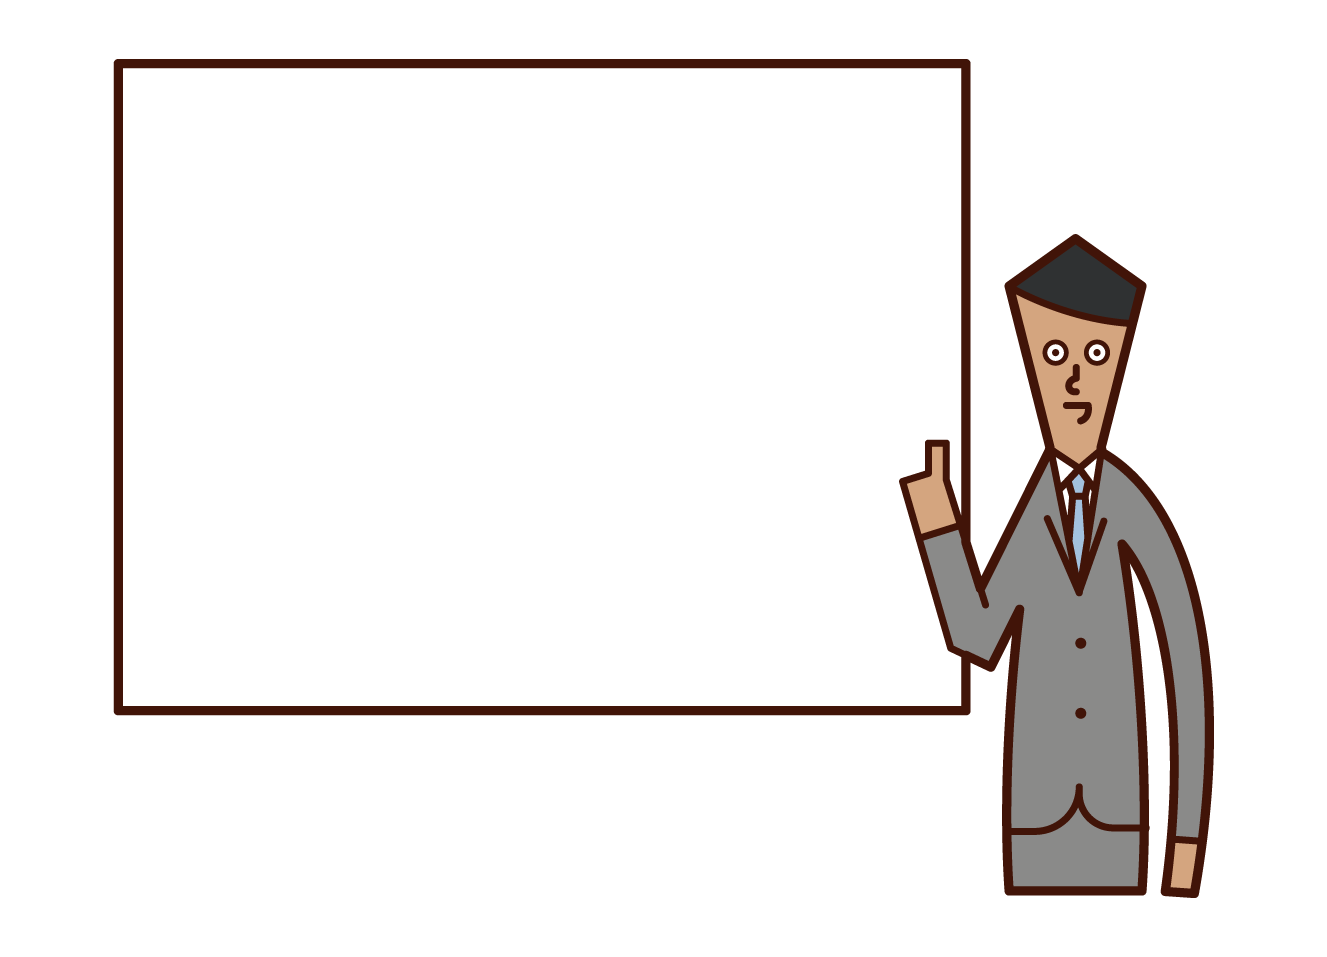 Illustrations of briefings and seminar lecturers (men)